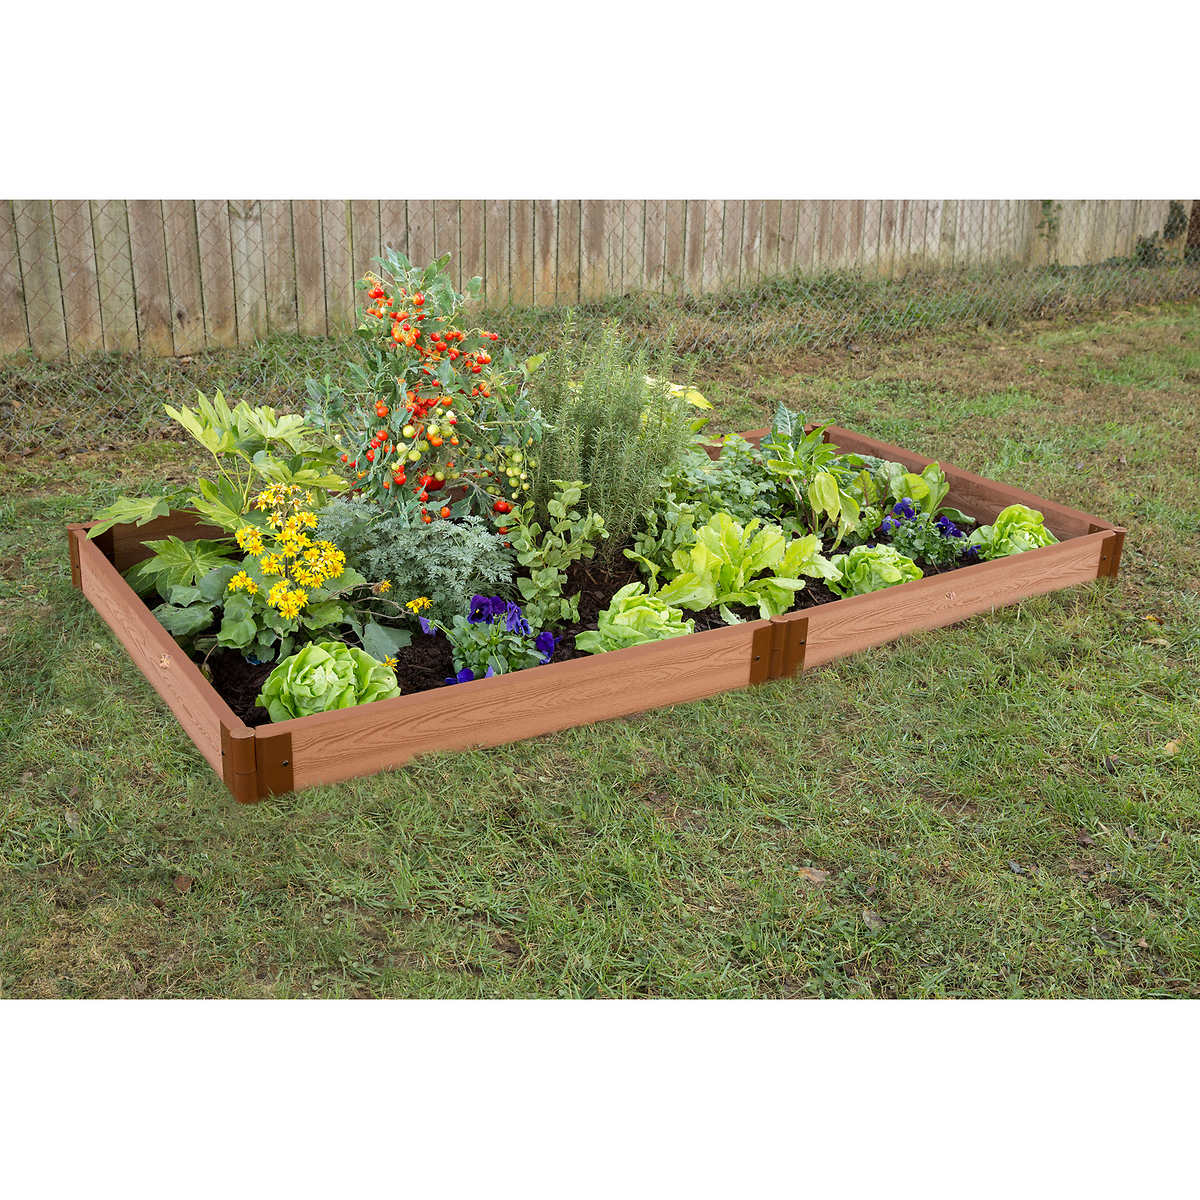 Frame it All System Raised Garden Bed Kit 4 ft x 8 ft x 55 in